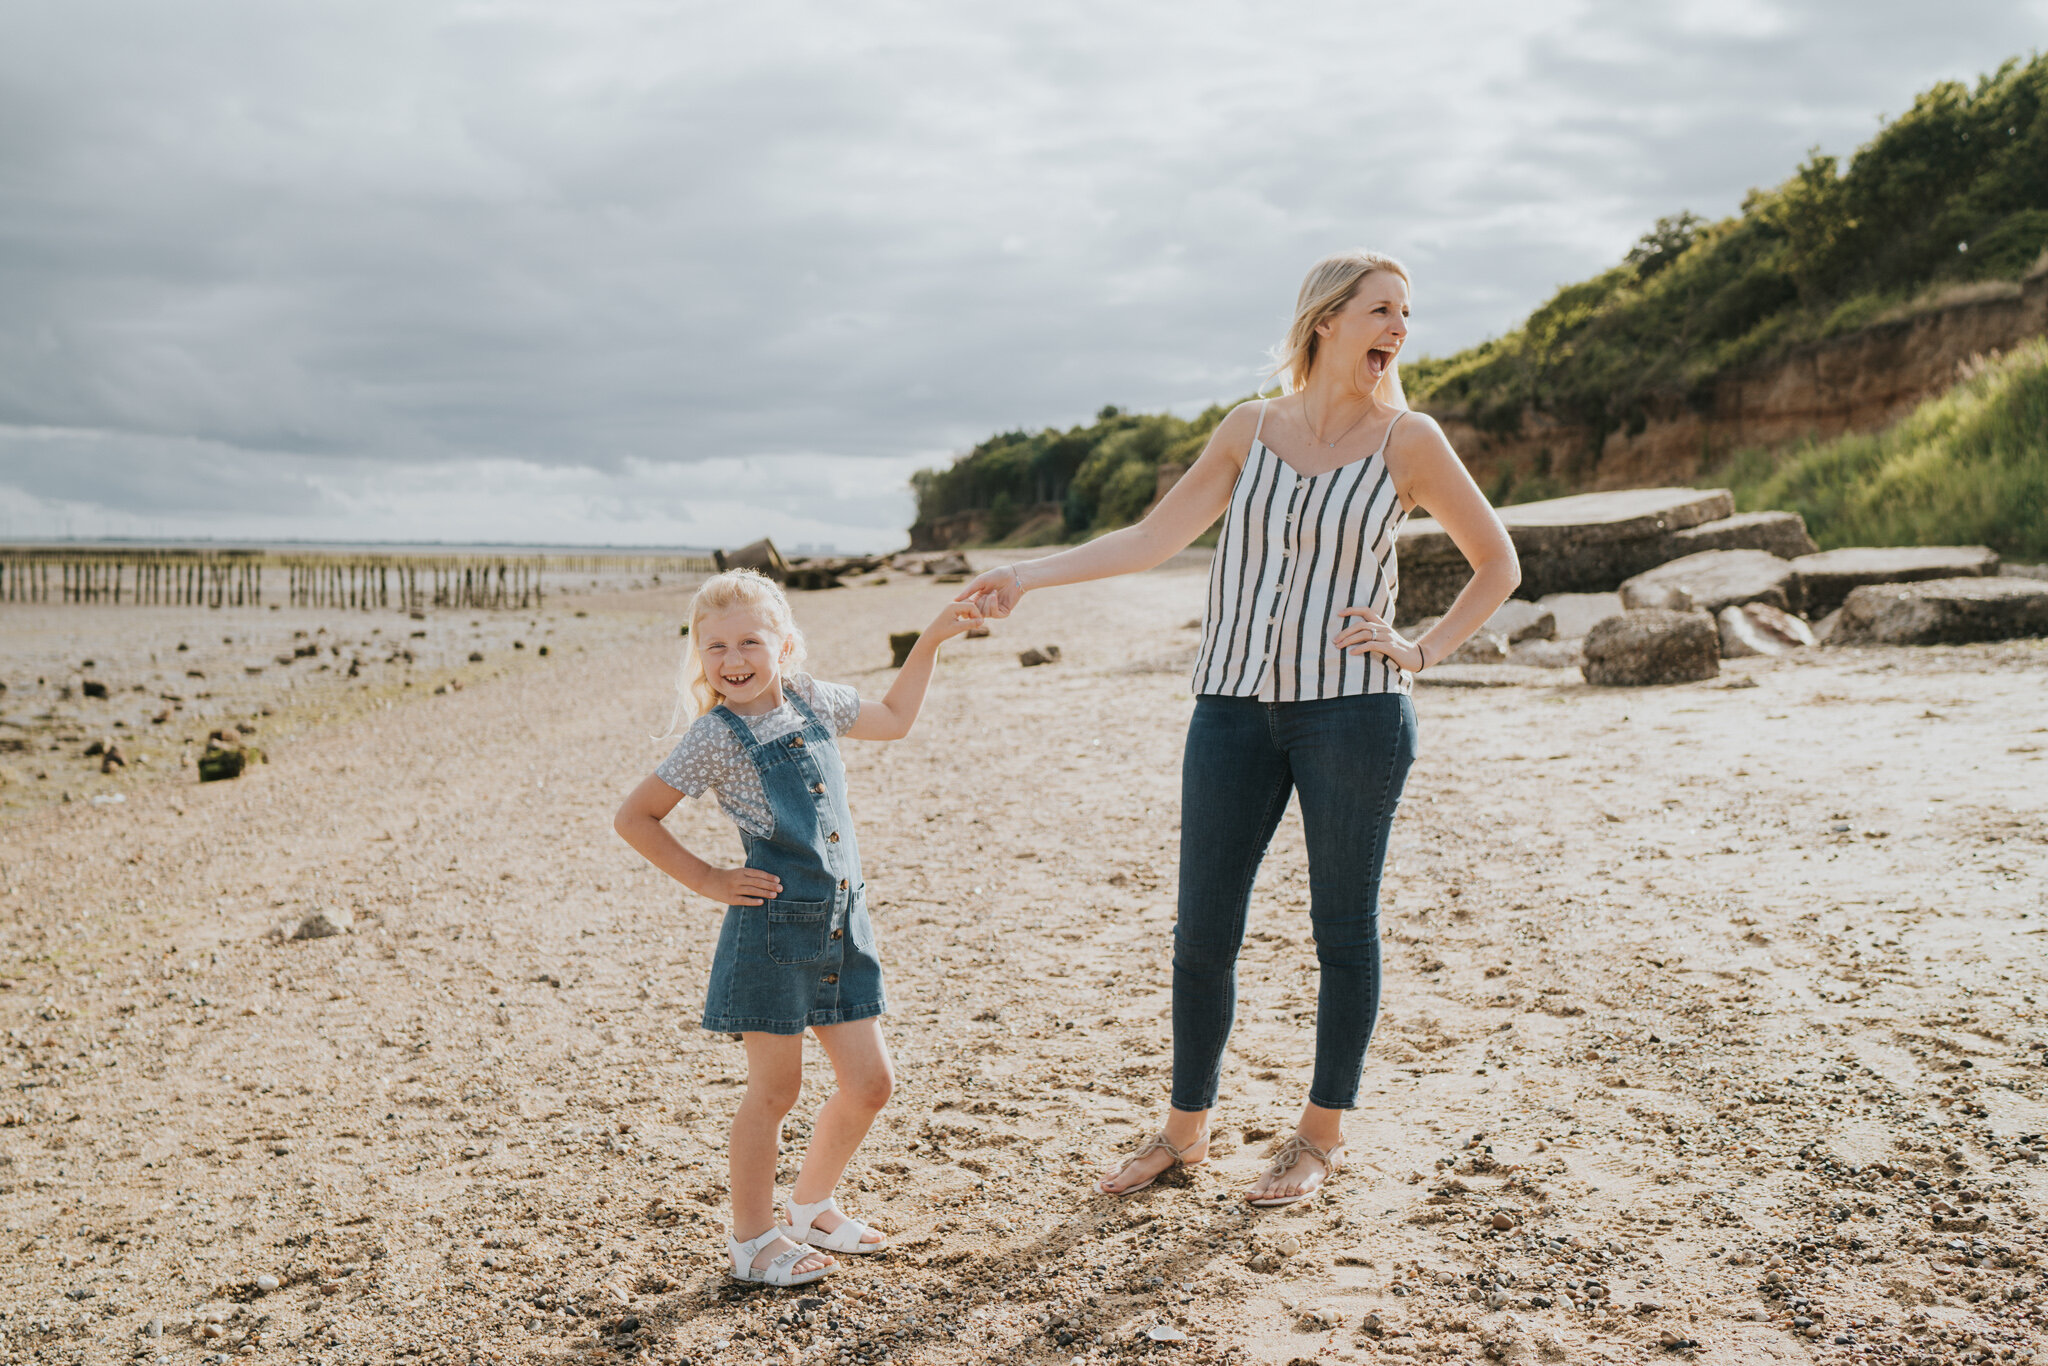 celebratory-beach-family-session-thomson-family-cudmore-grove-east-mersea-grace-elizabeth-colchester-essex-devon-suffolk-and-norfolk-alternative-wedding-and-family-photographer (16 of 53).jpg